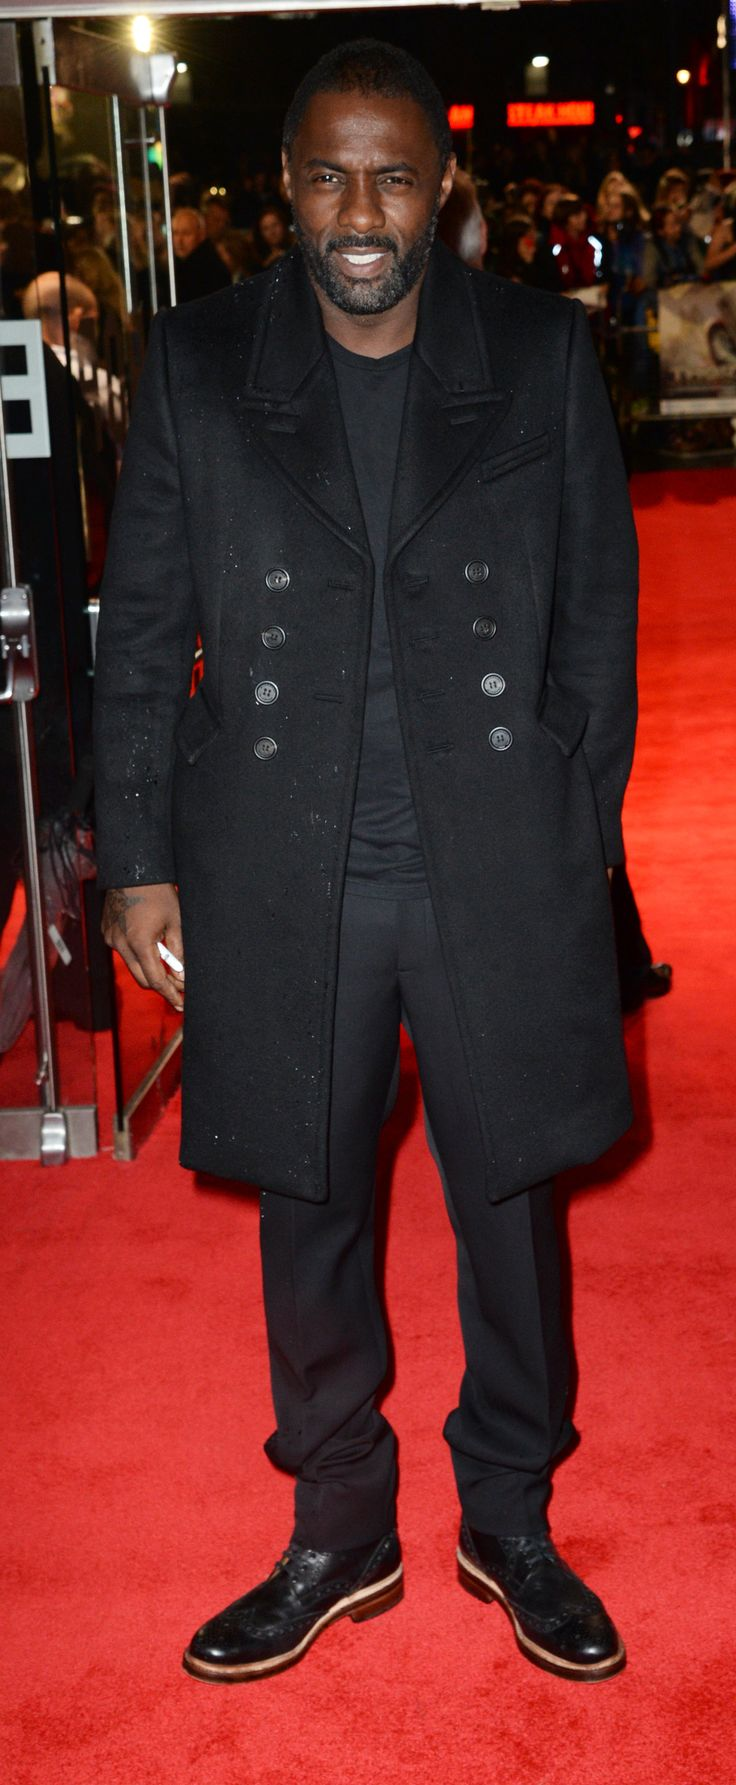 British actor Idris Elba wearing Burberry to the world premiere of Thor in London last night